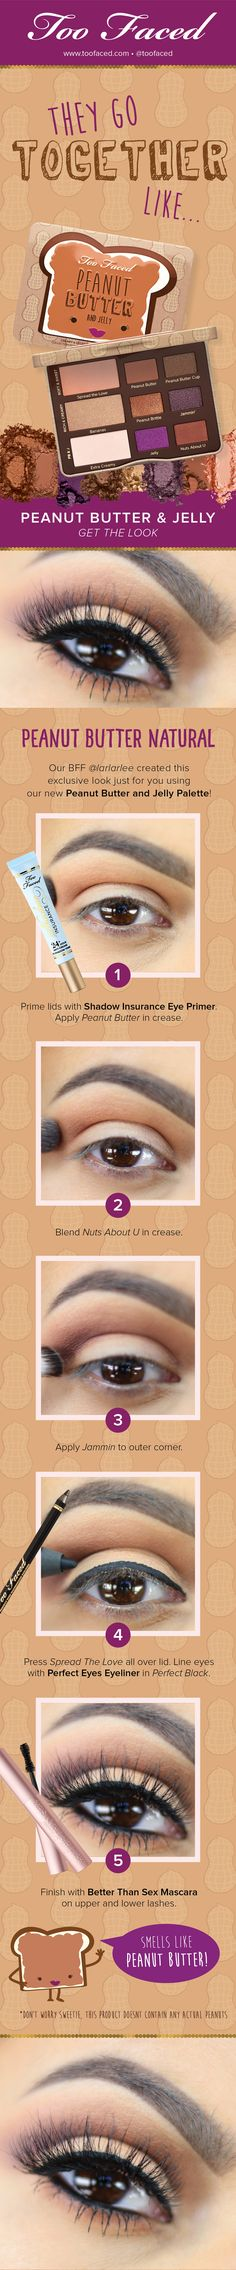 Too Faced Peanut Butter and Jelly Palette #toofaced